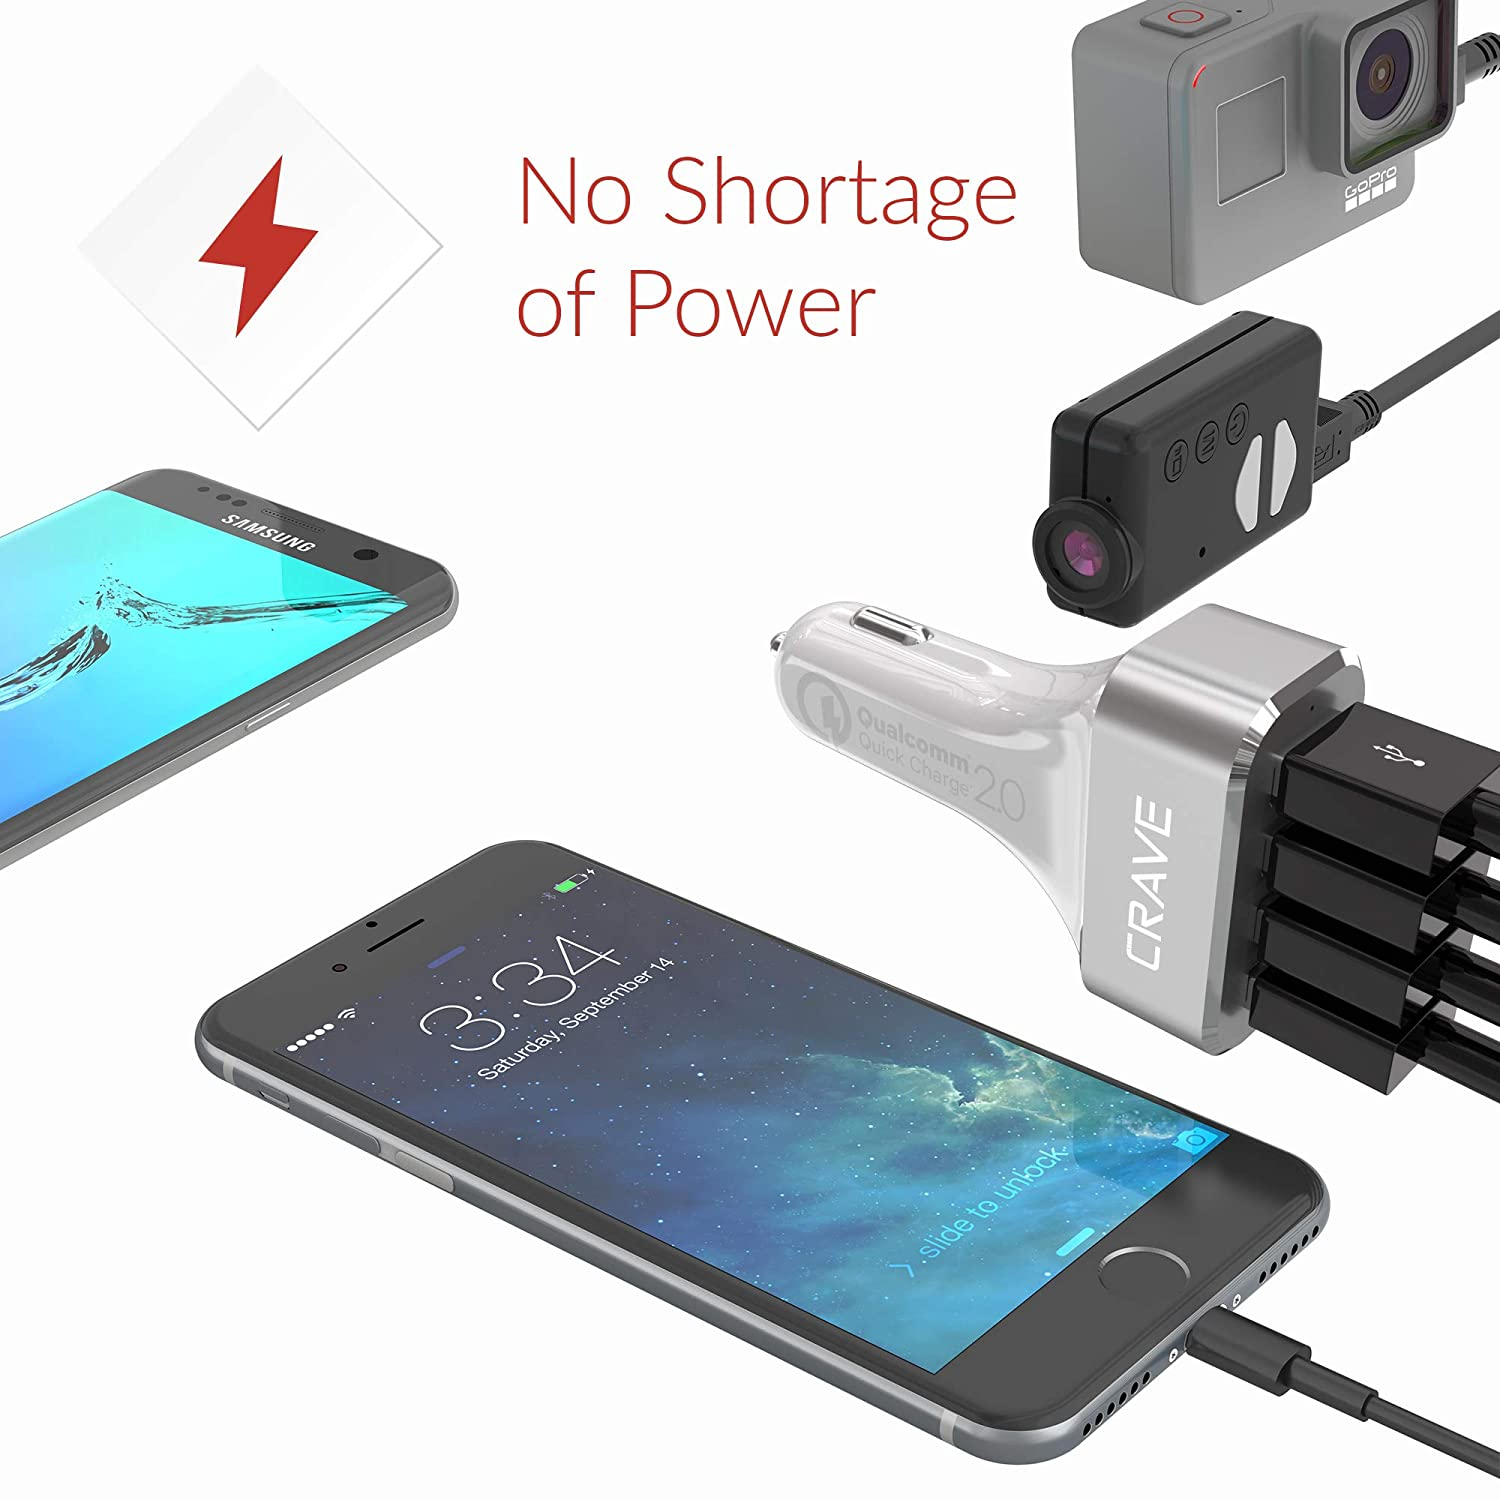 Black FBA/_CRVCH101 Crave CarHub 54W 4 Port USB Car Charger Qualcomm Quick Charge 3.0